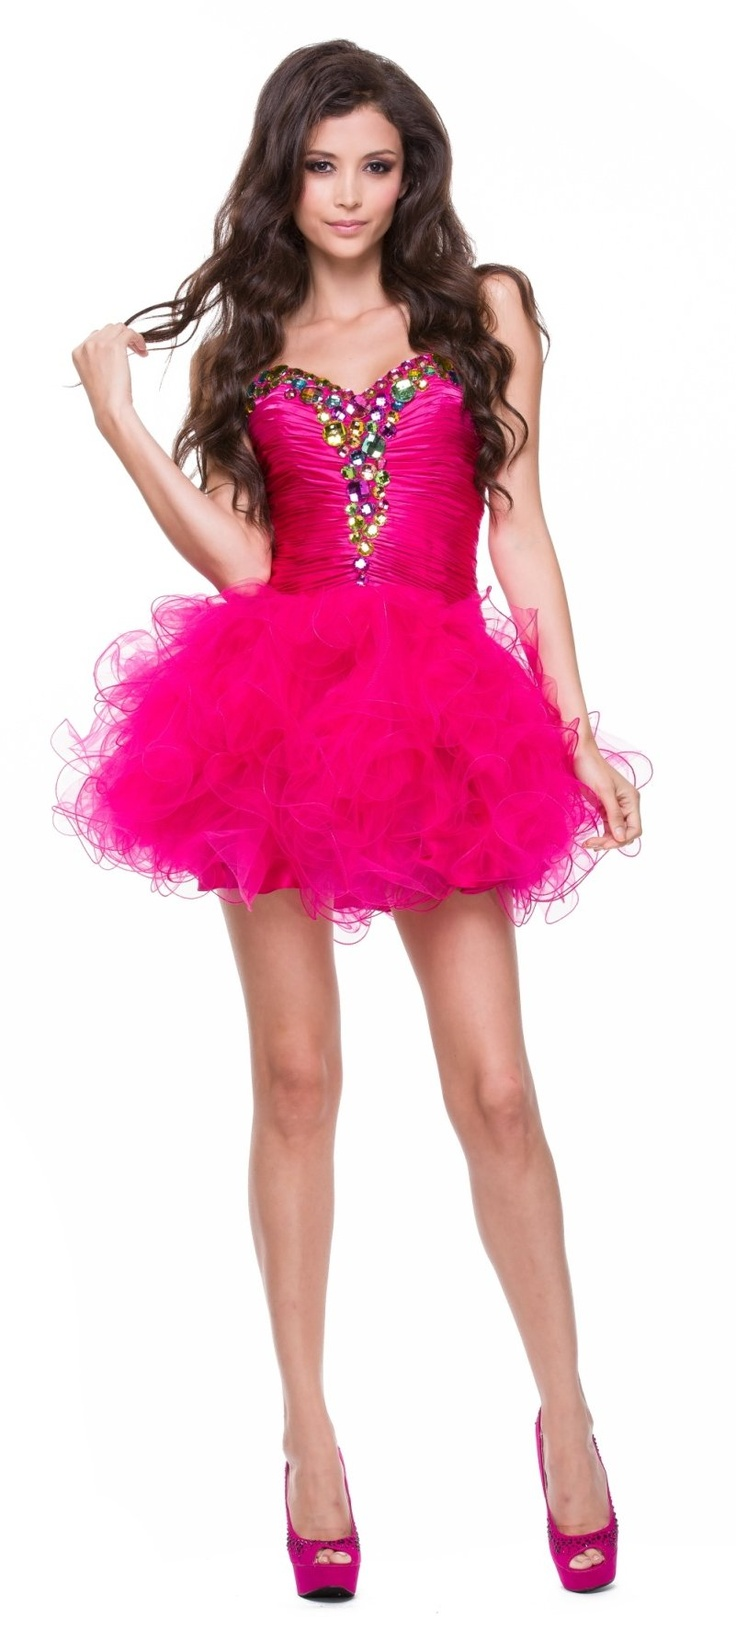 225 best formal dresses images on pinterest prom dress bridal poofy layered ruffle skirt homecoming fuchsia dress jewel strapless 17799 ombrellifo Gallery